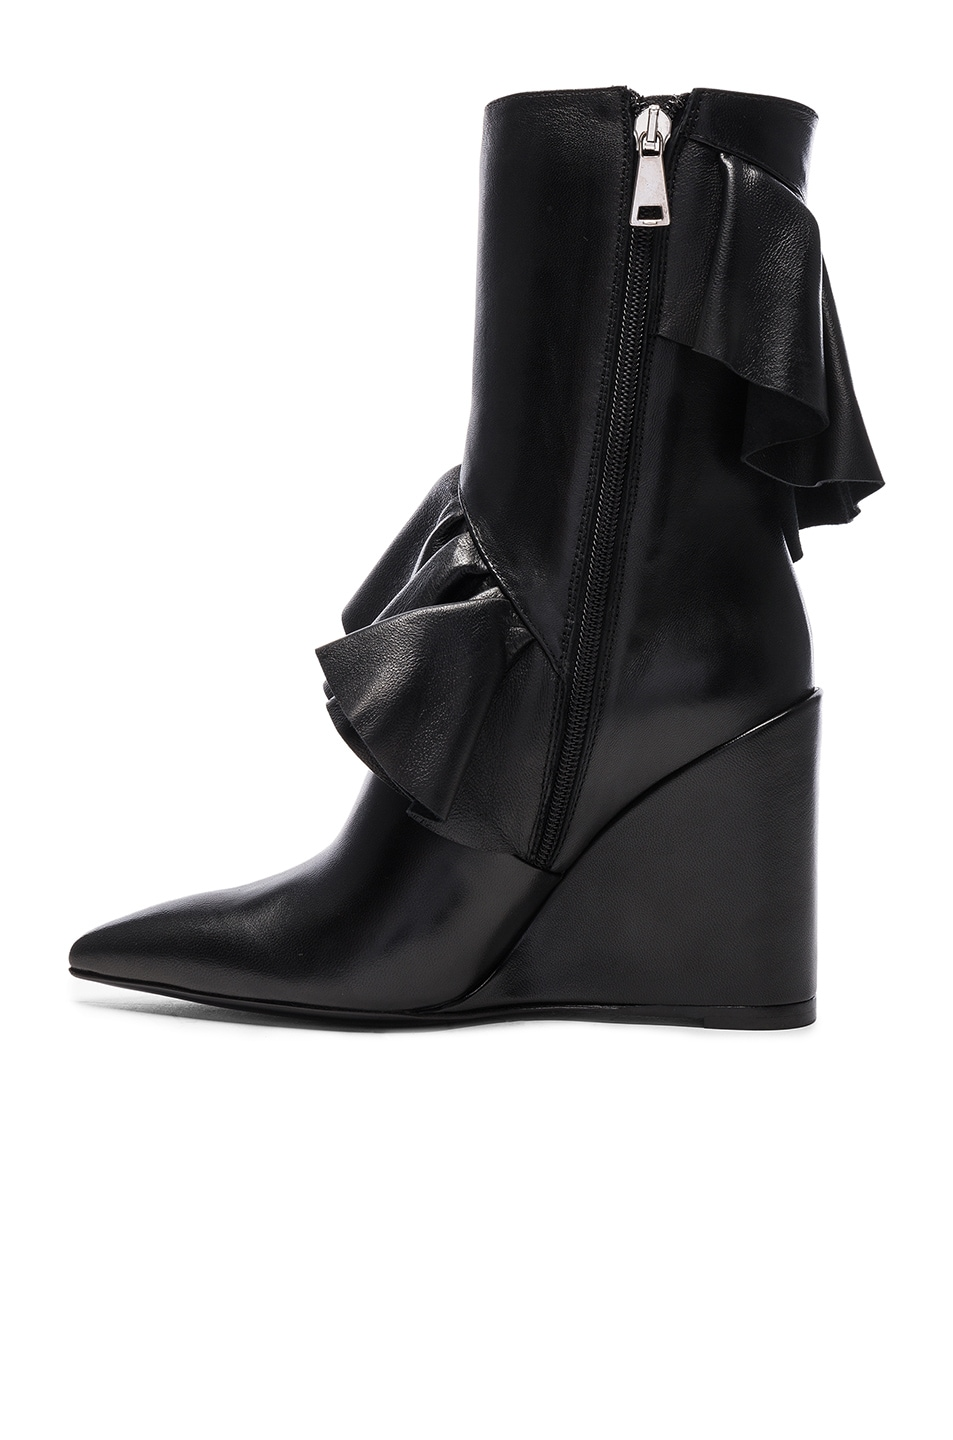 Image 5 of J.W. Anderson Mid Calf Leather Ruffle Boots in Black